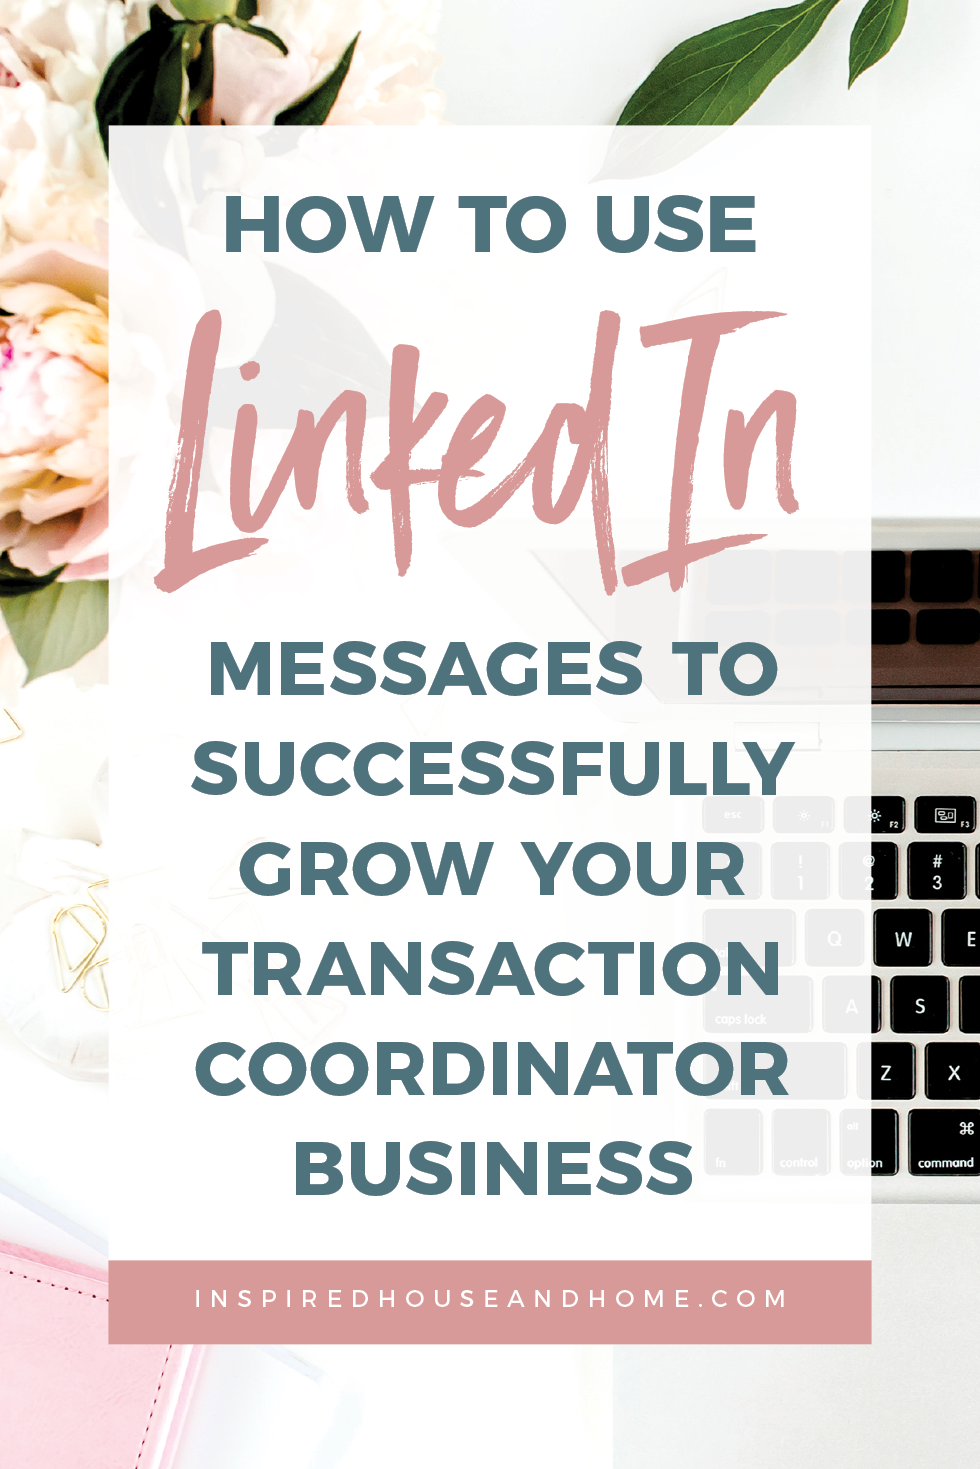 How To Use LinkedIn Messages To Successfully Grow Your Transaction Coordinator Business   Inspired House and Home